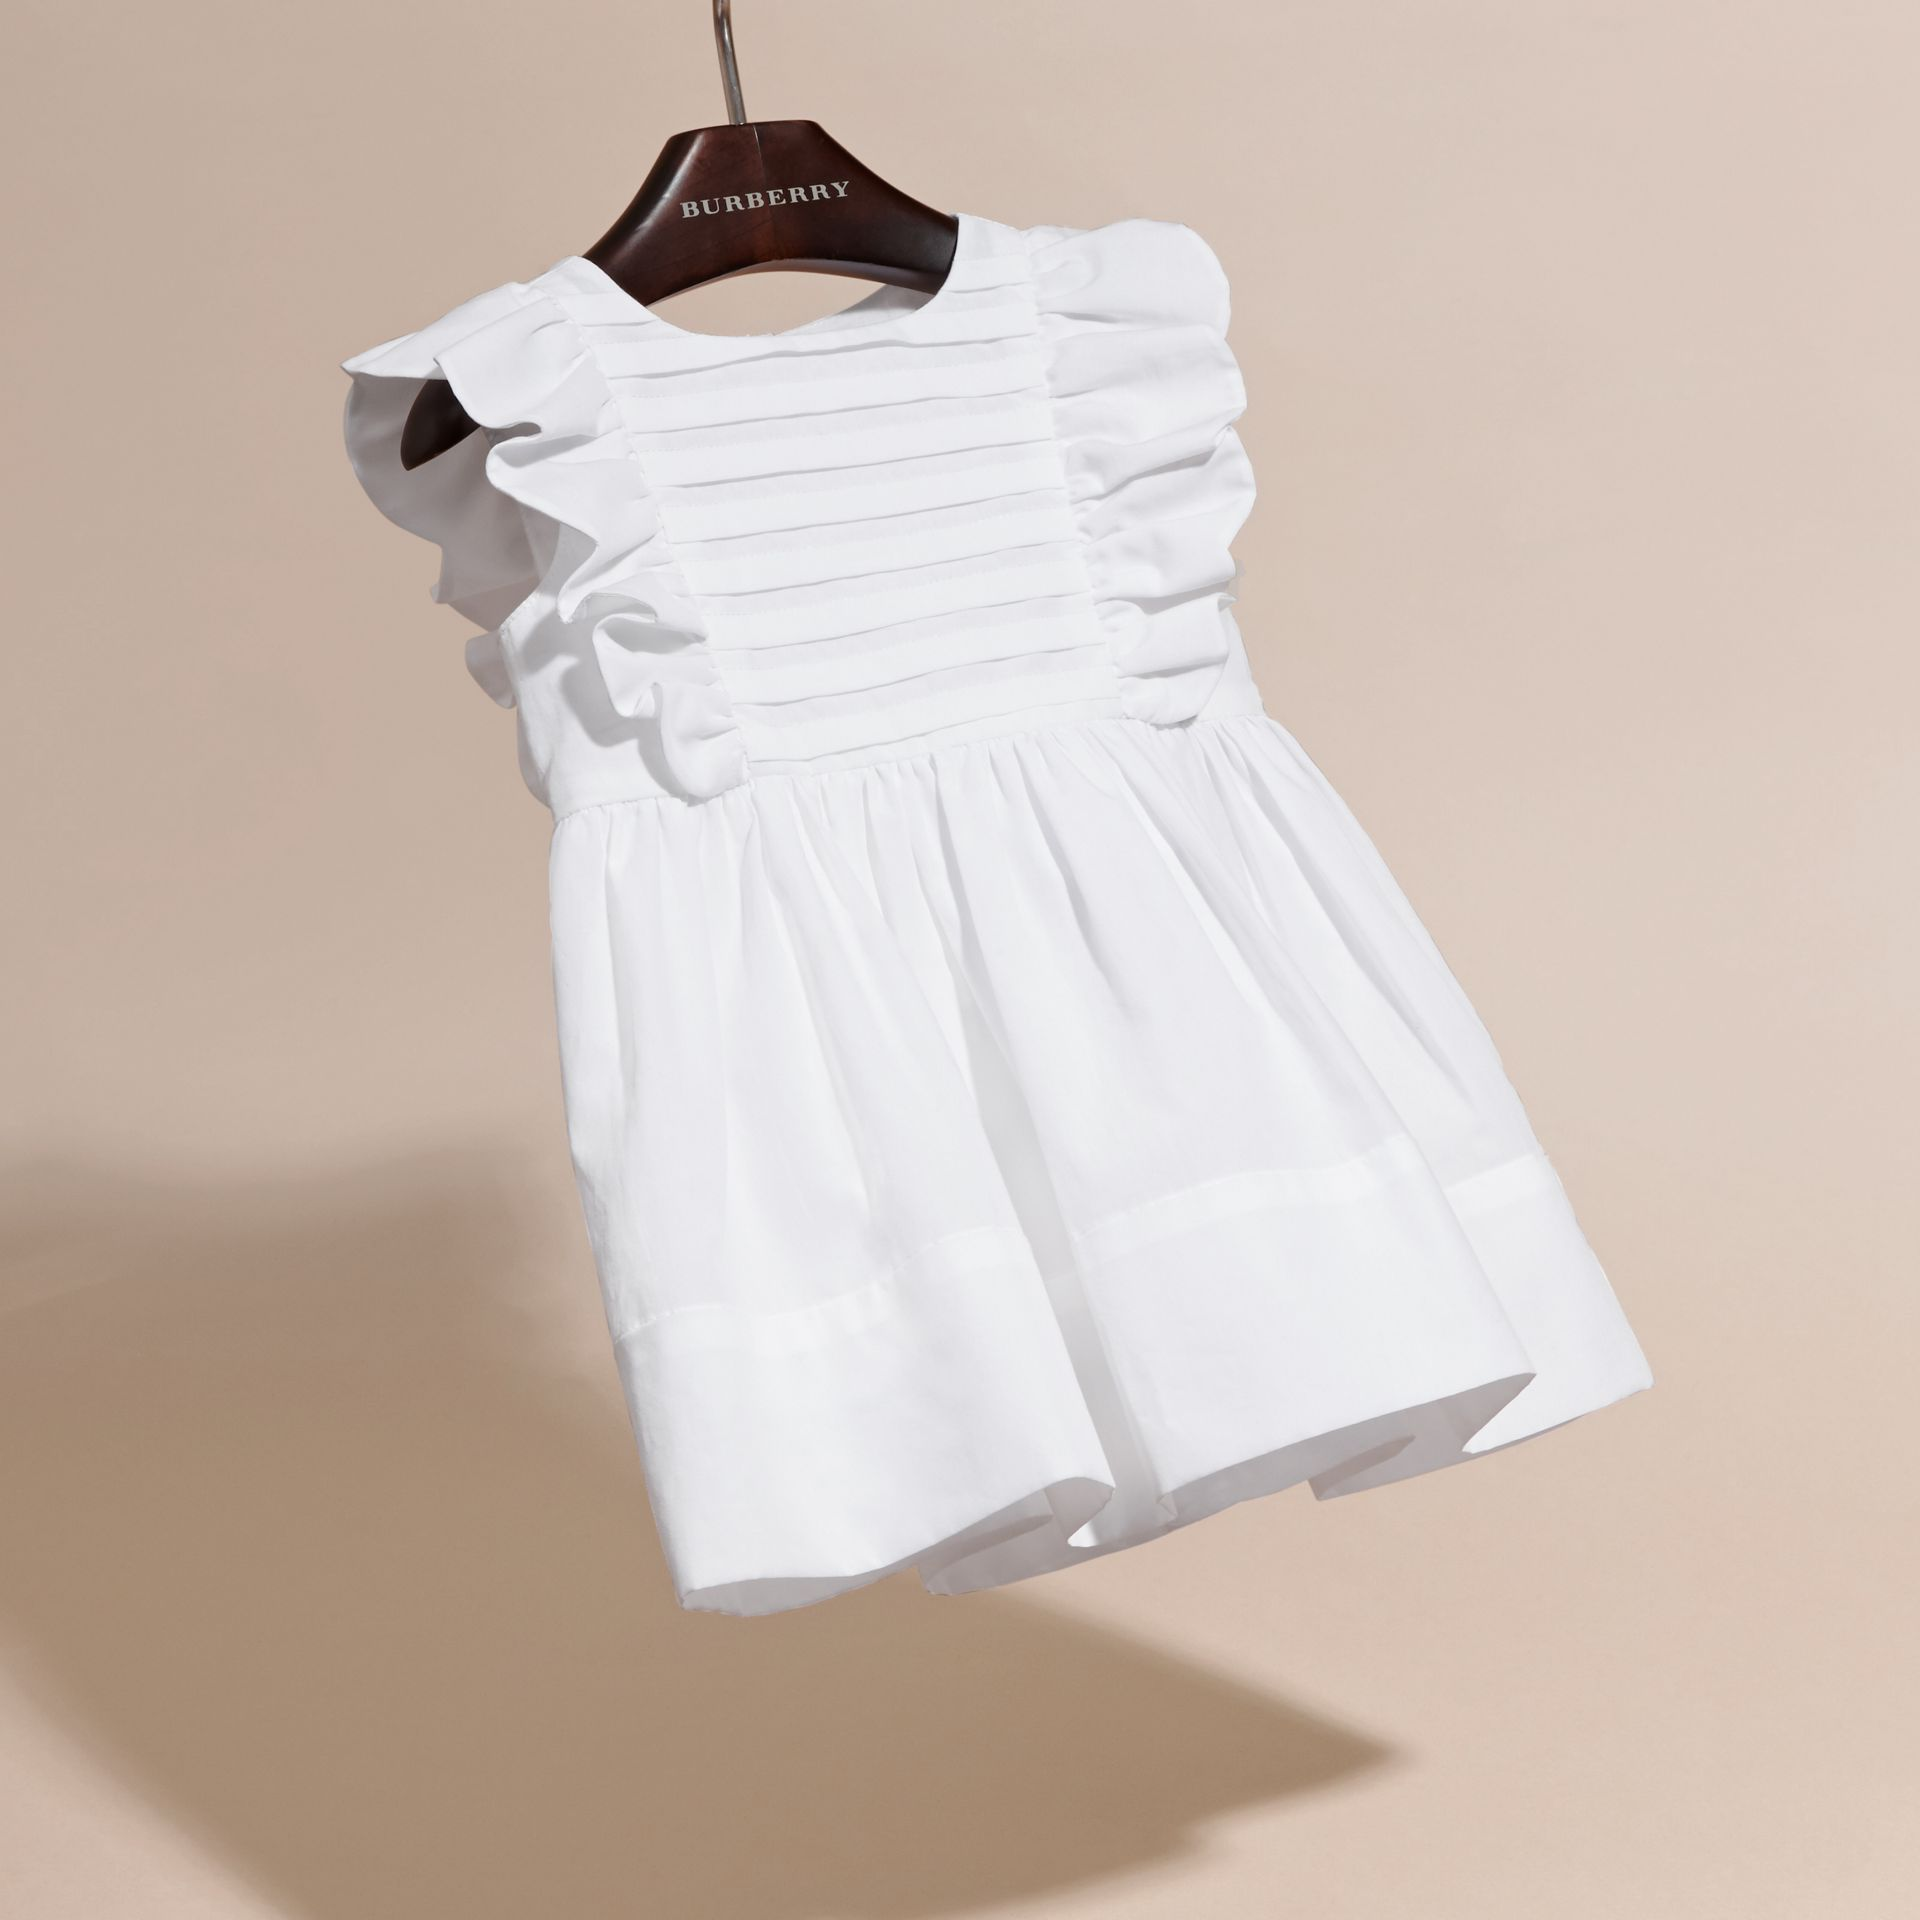 Ruffle and Pleat Detail Cotton Dress | Burberry - gallery image 3